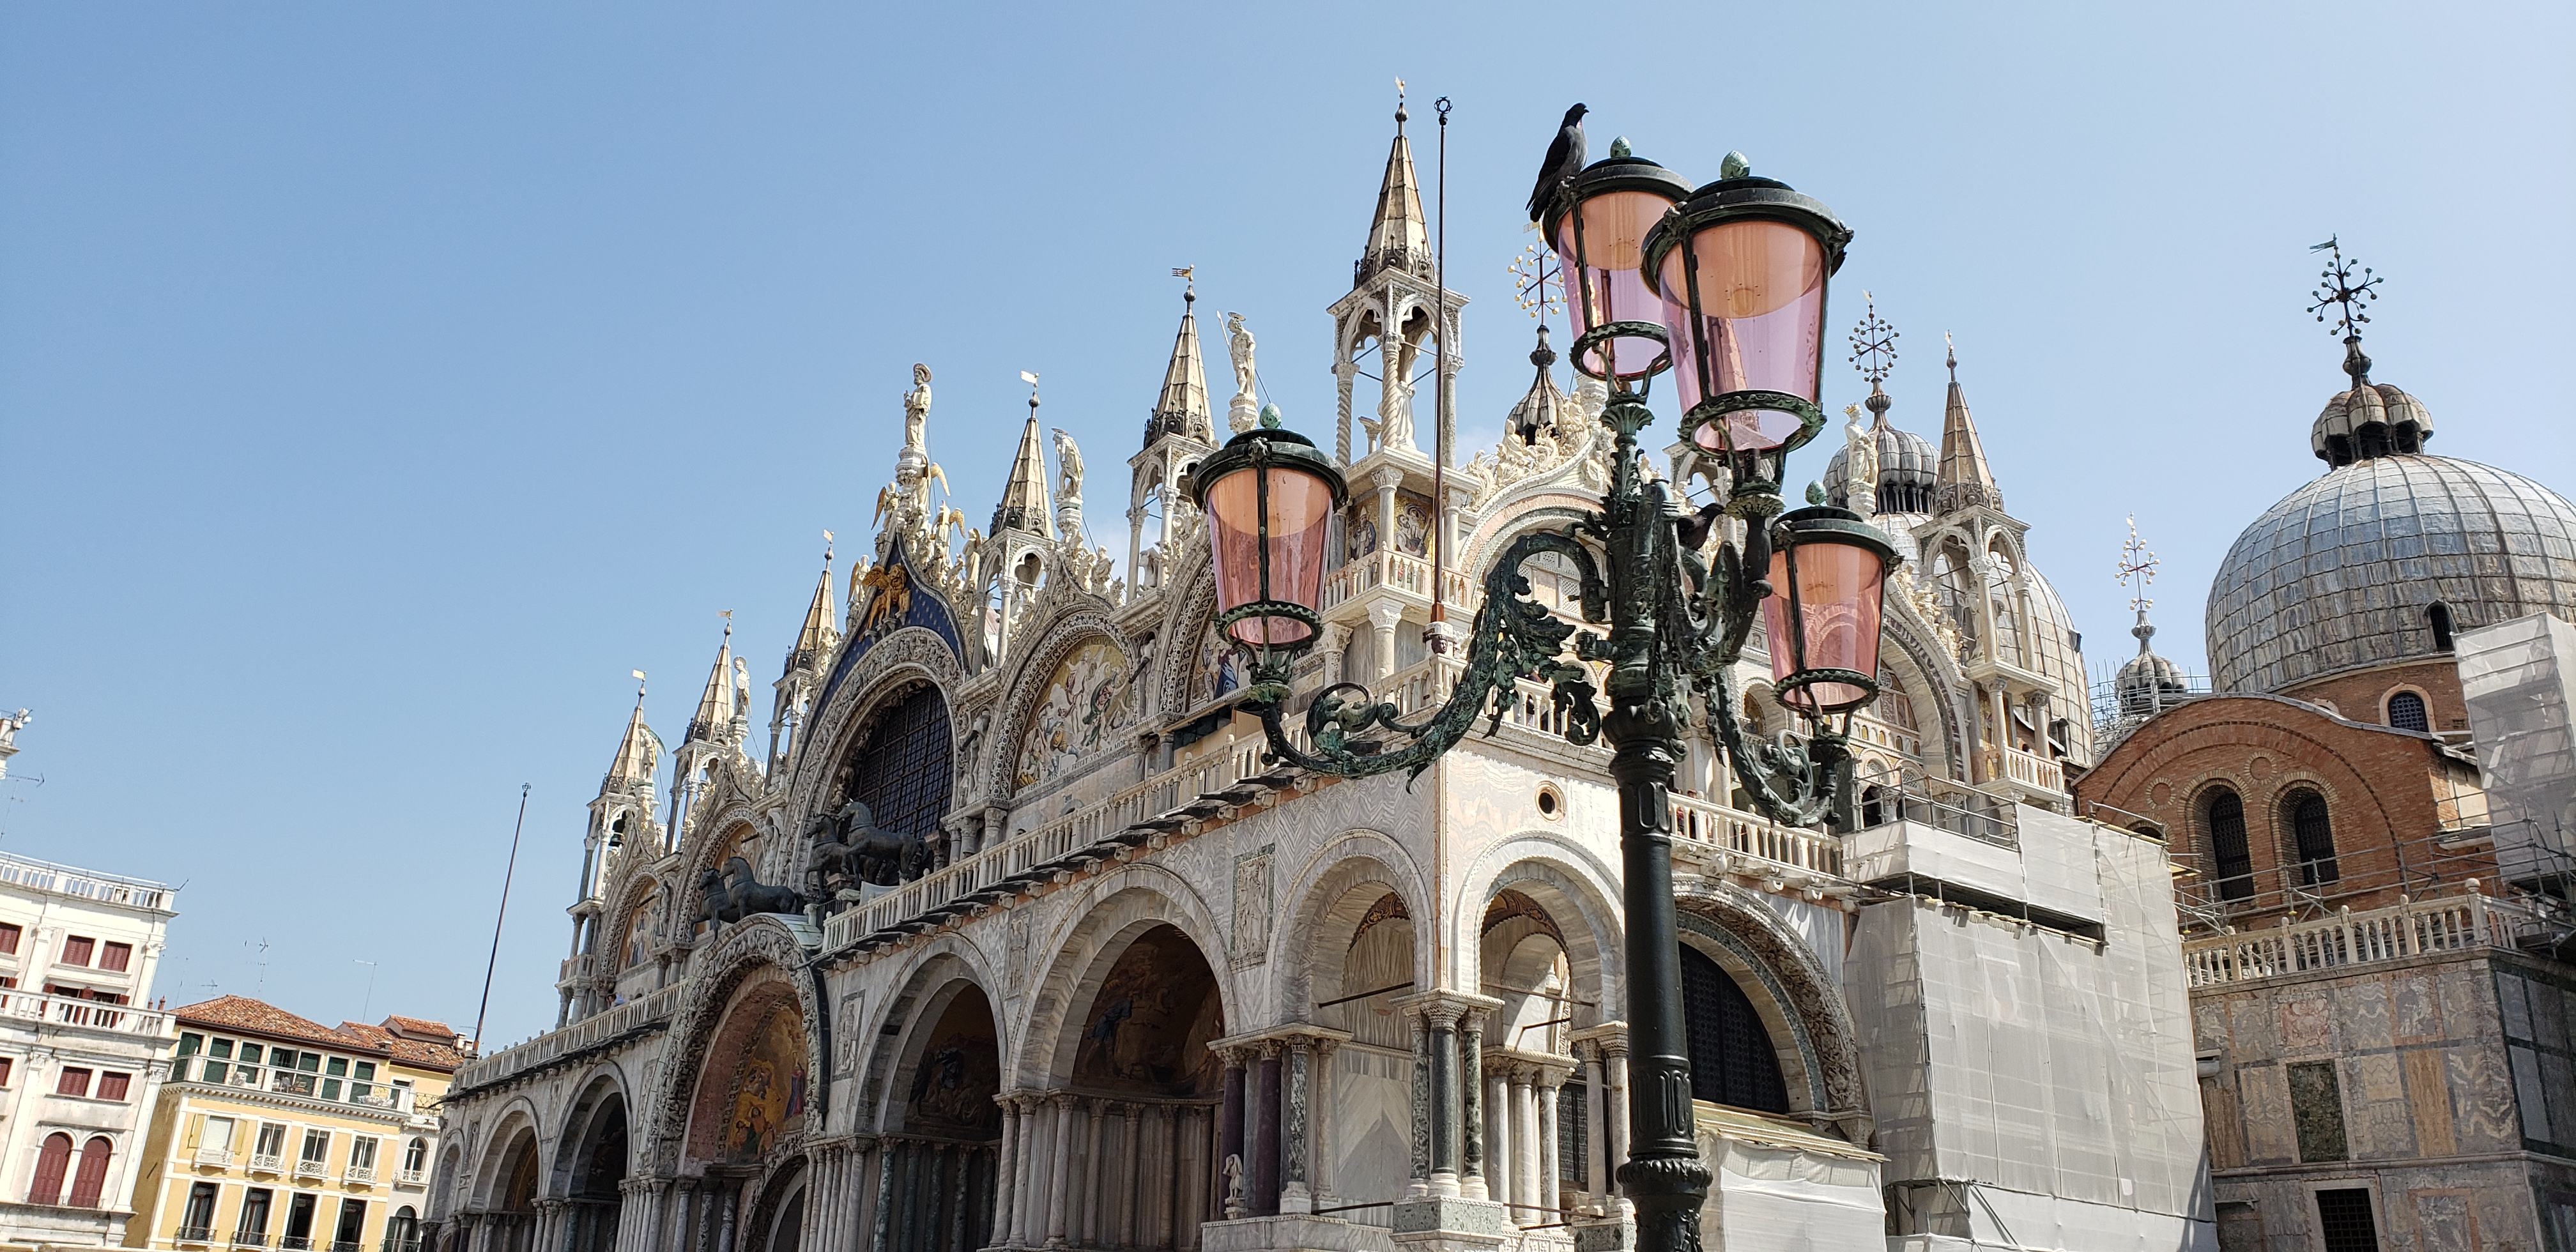 Venetian street lights with St Mark's Basilica in the background